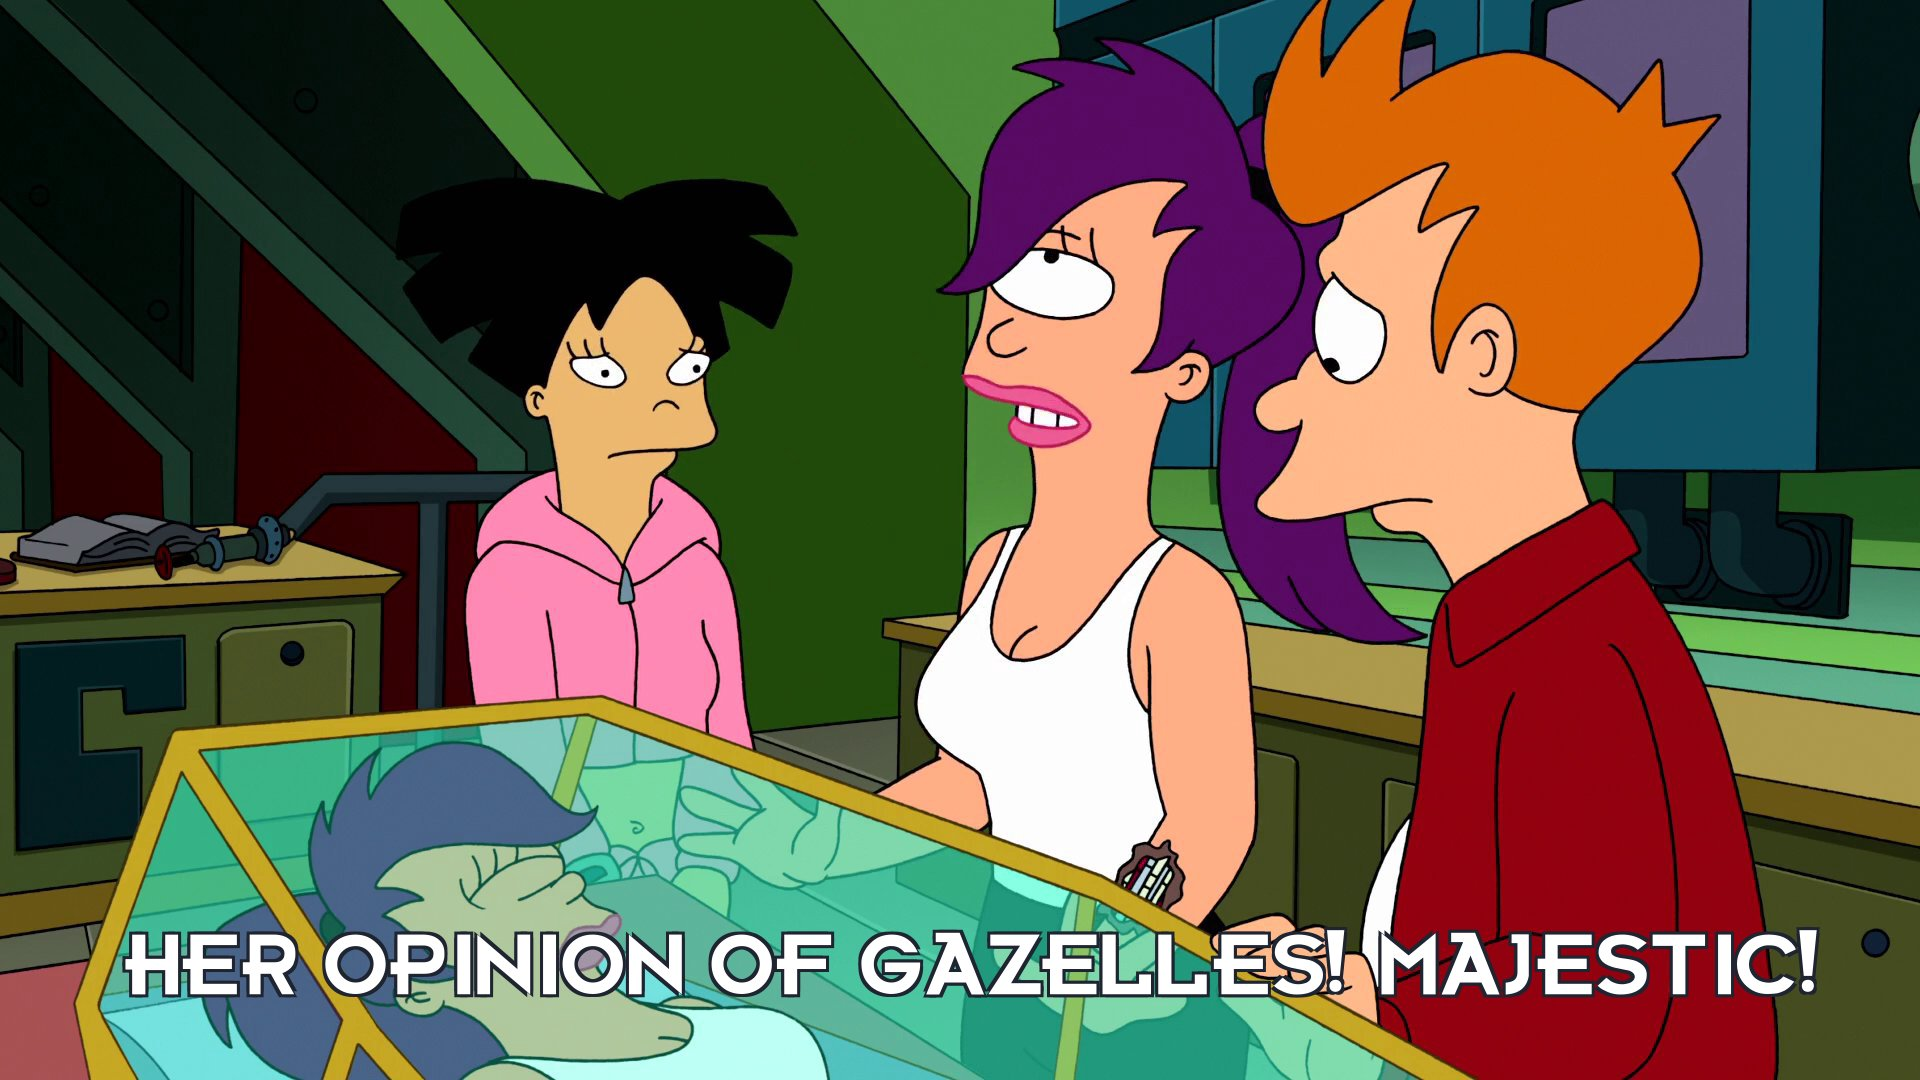 Robot Turanga Leela: Her opinion of gazelles! Majestic!